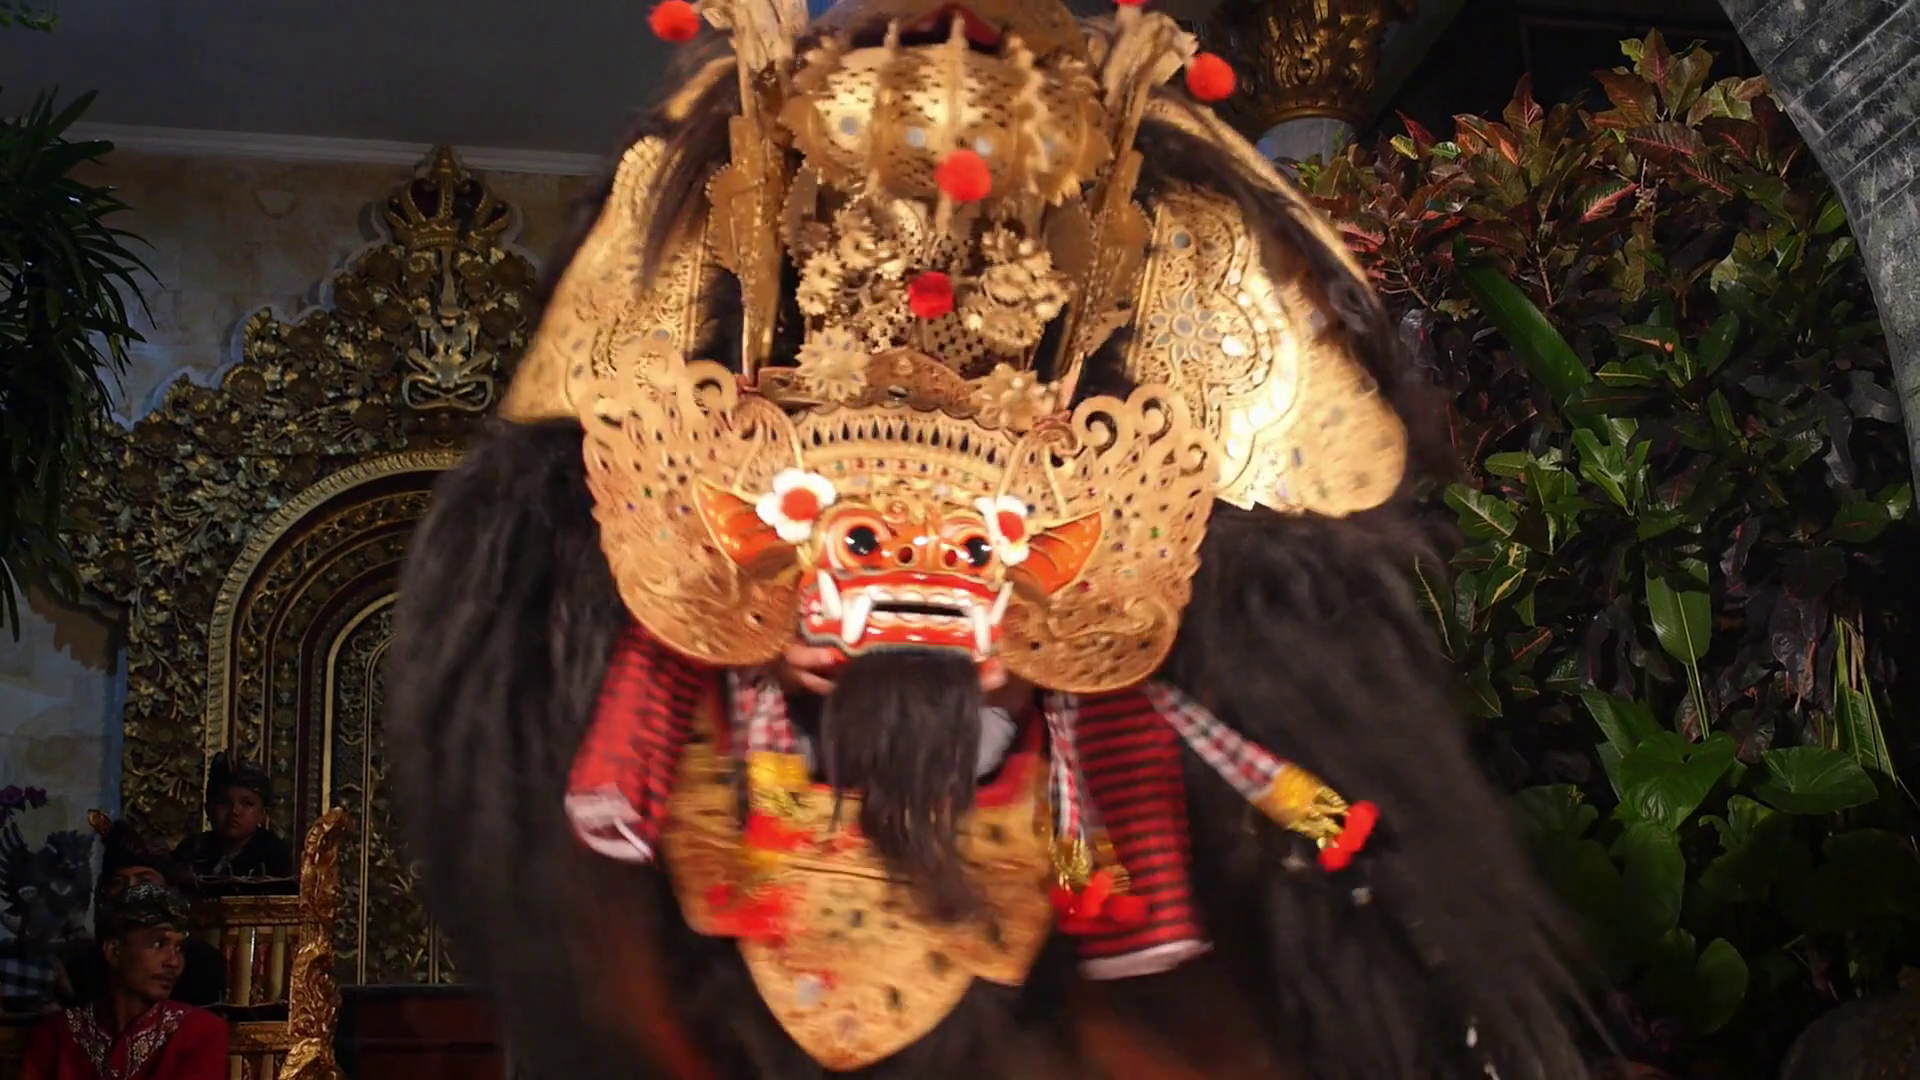 traditional barong dance performance in bali indonesia tradition 500621 hd wallpaper backgrounds download traditional barong dance performance in